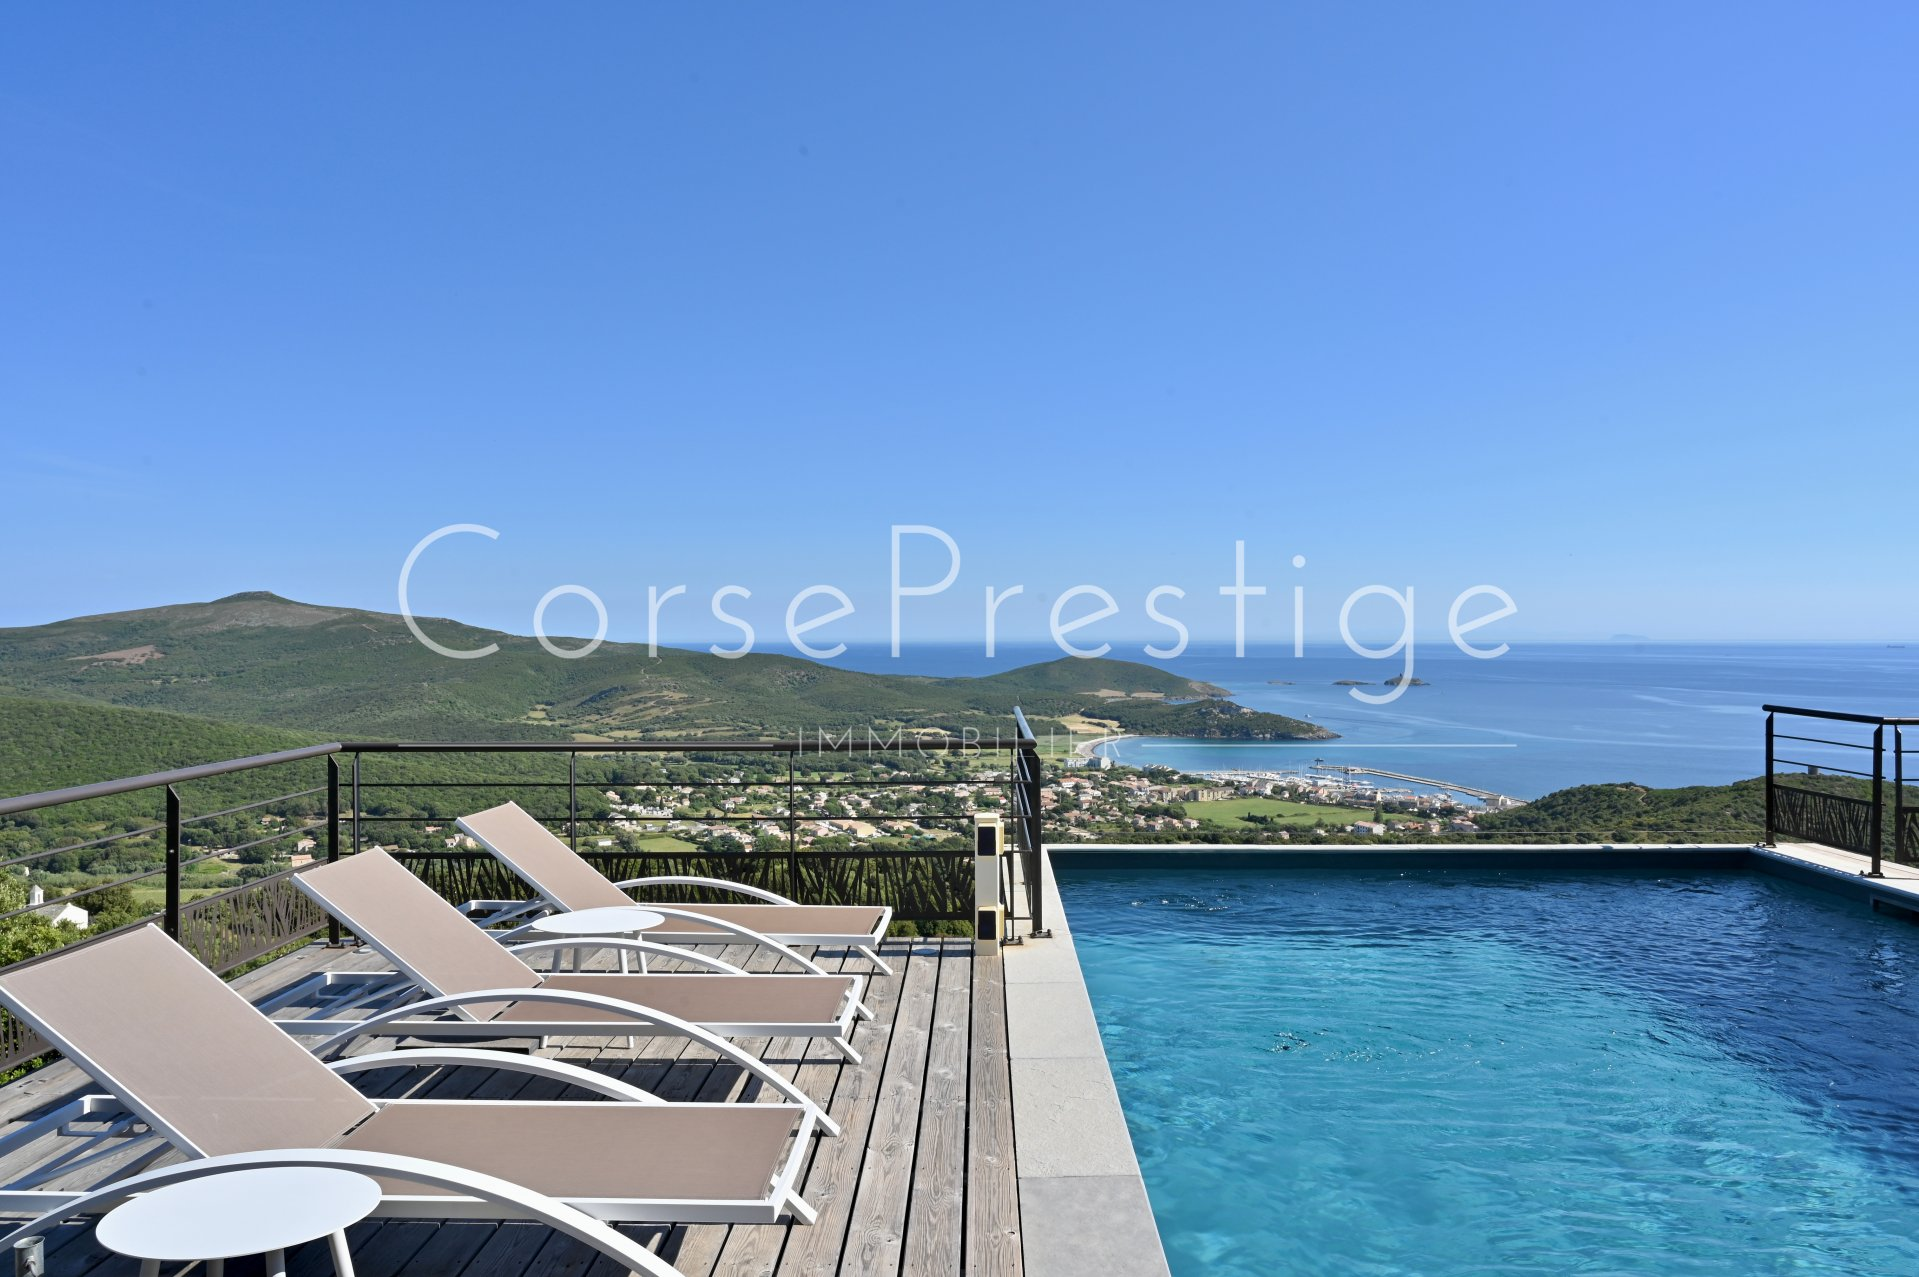 hotel for sale in the north of corsica - cap corsica image4